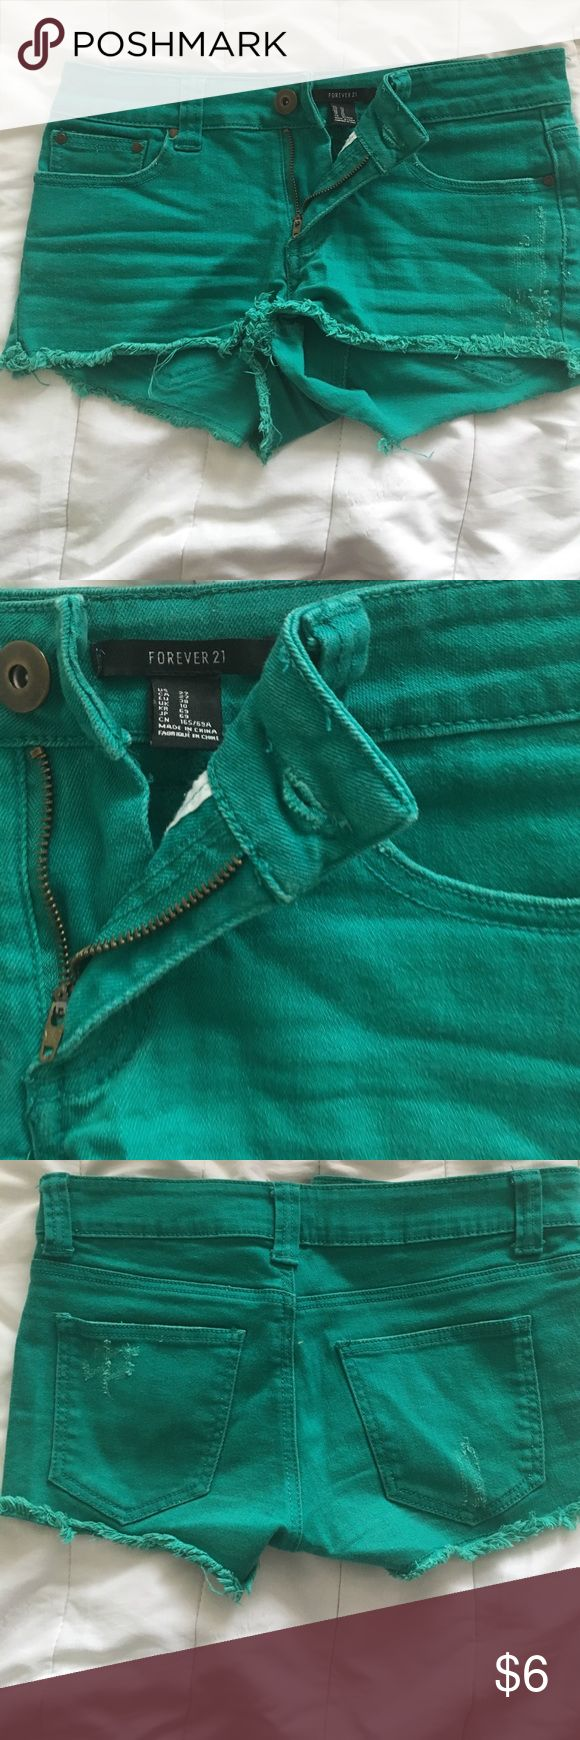 Forever 21 teal jean shorts Teal jean shorts from Forever 21 size 27. Worn a few times but no damage! Super cute for spring and summer! Forever 21 Shorts Jean Shorts